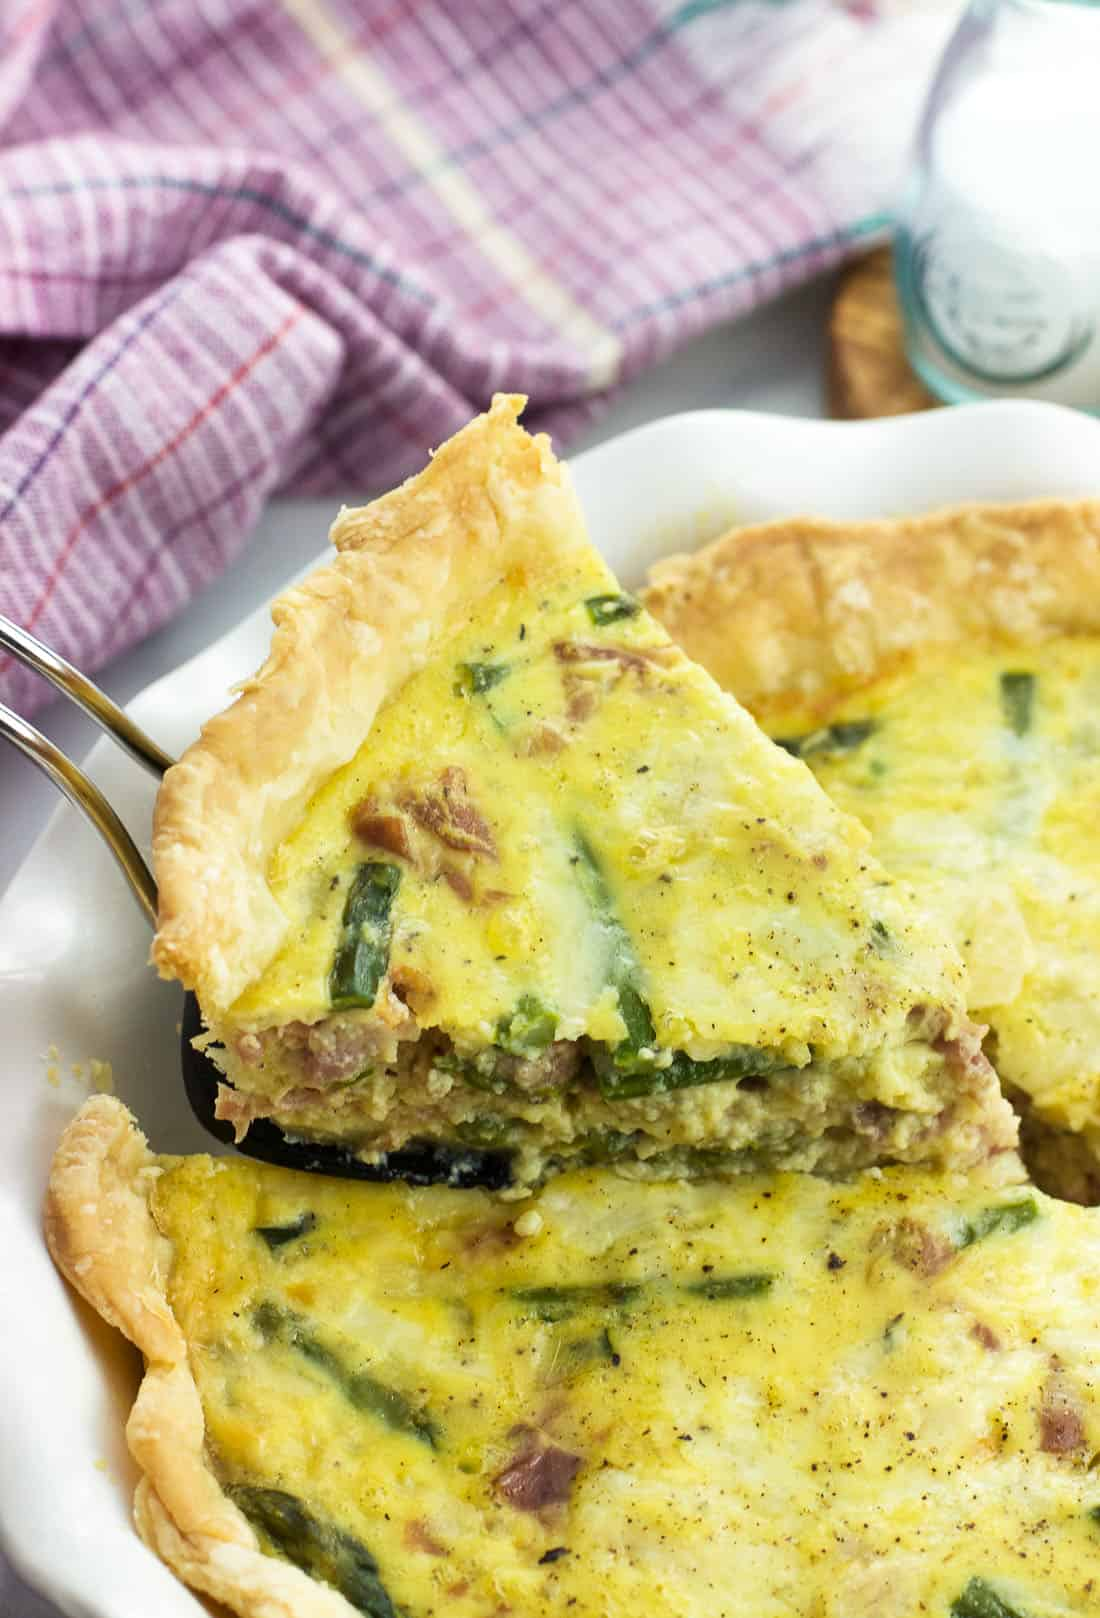 A slice of quiche being lifted out of the pie plate with a wedge-shaped spatula